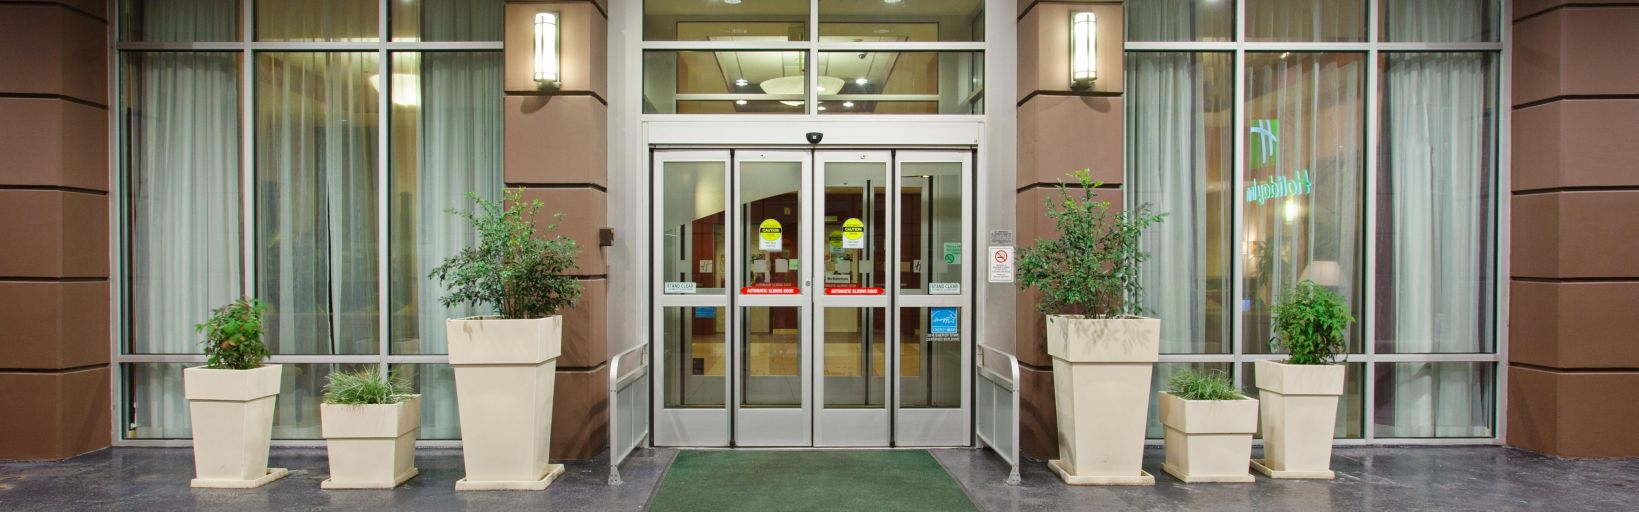 Holiday Inn Seattle Downtown Hotel By Ihg